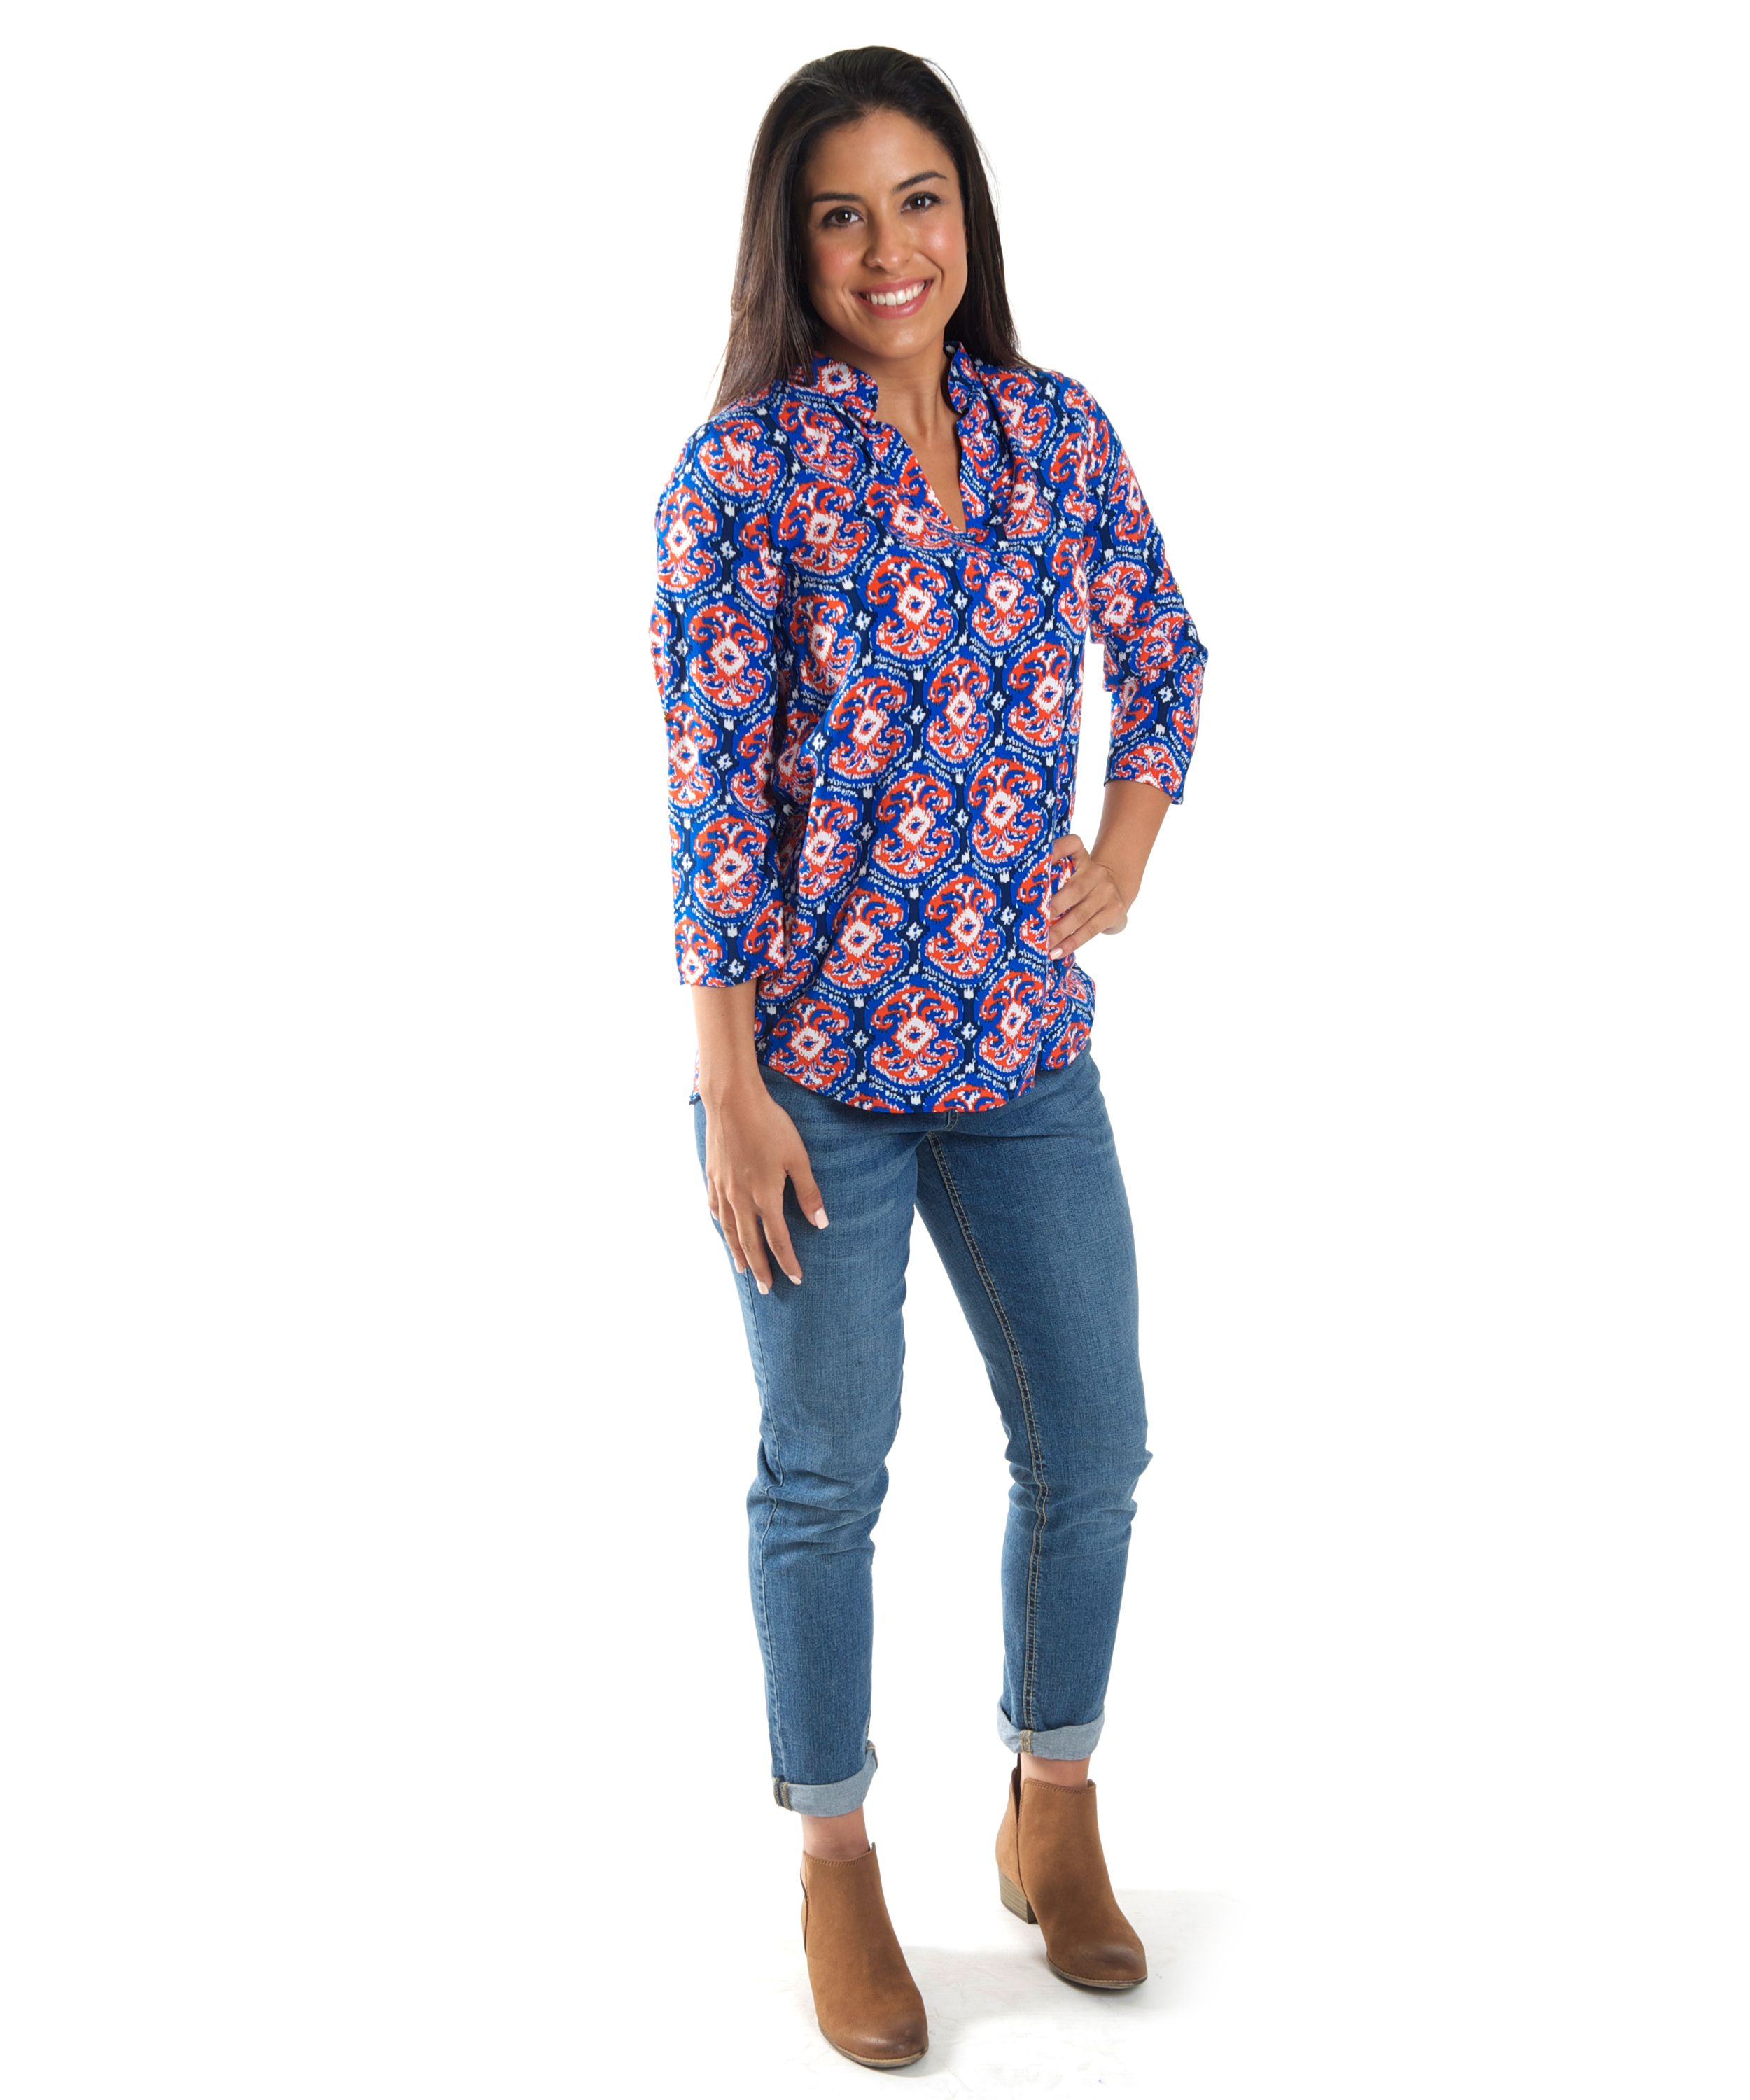 Dress Custom shirts online pictures, Jung daniela spring style inspiration